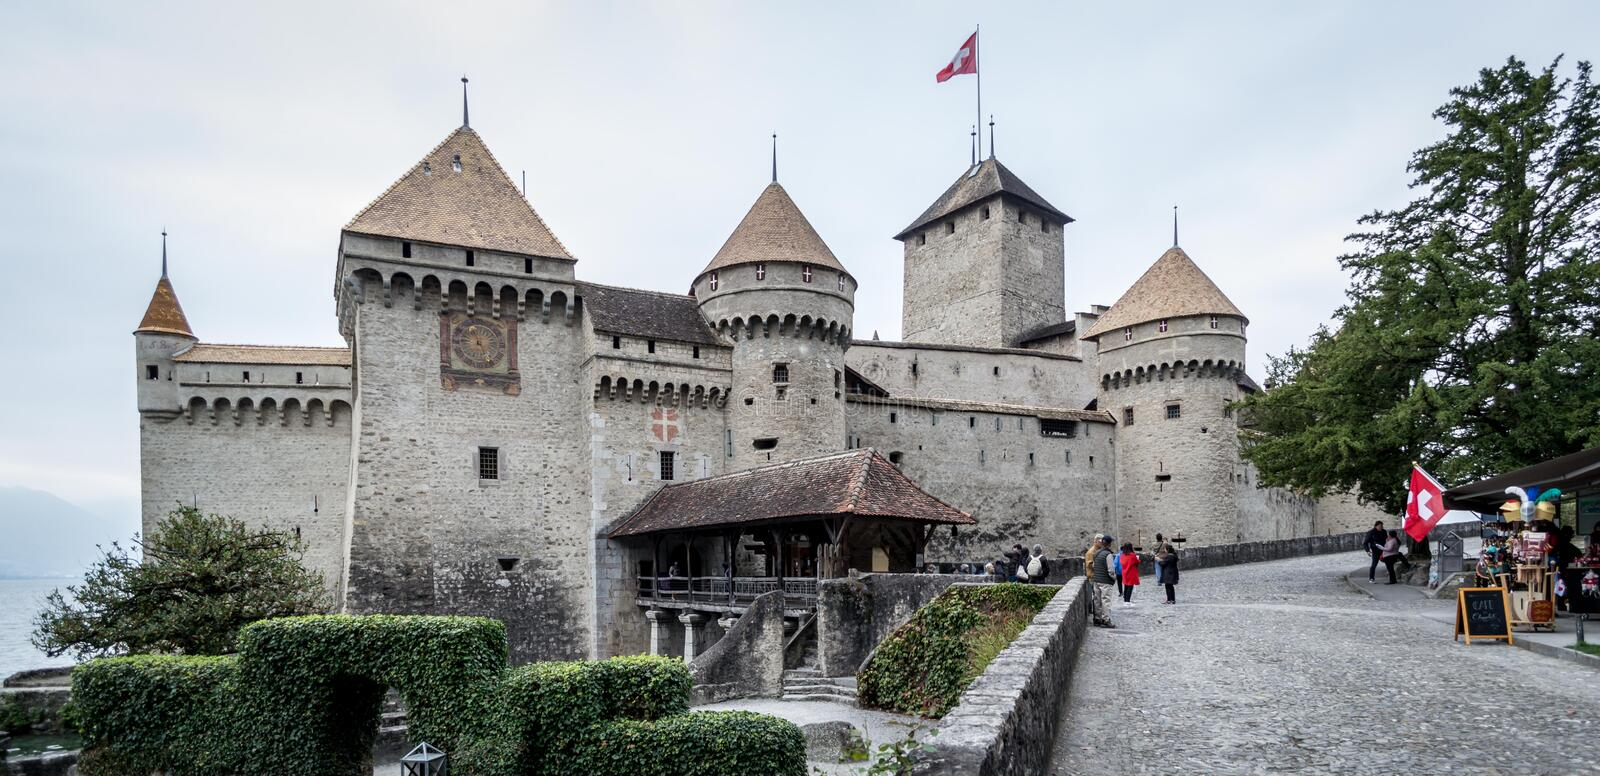 Château de Chillon photos stock